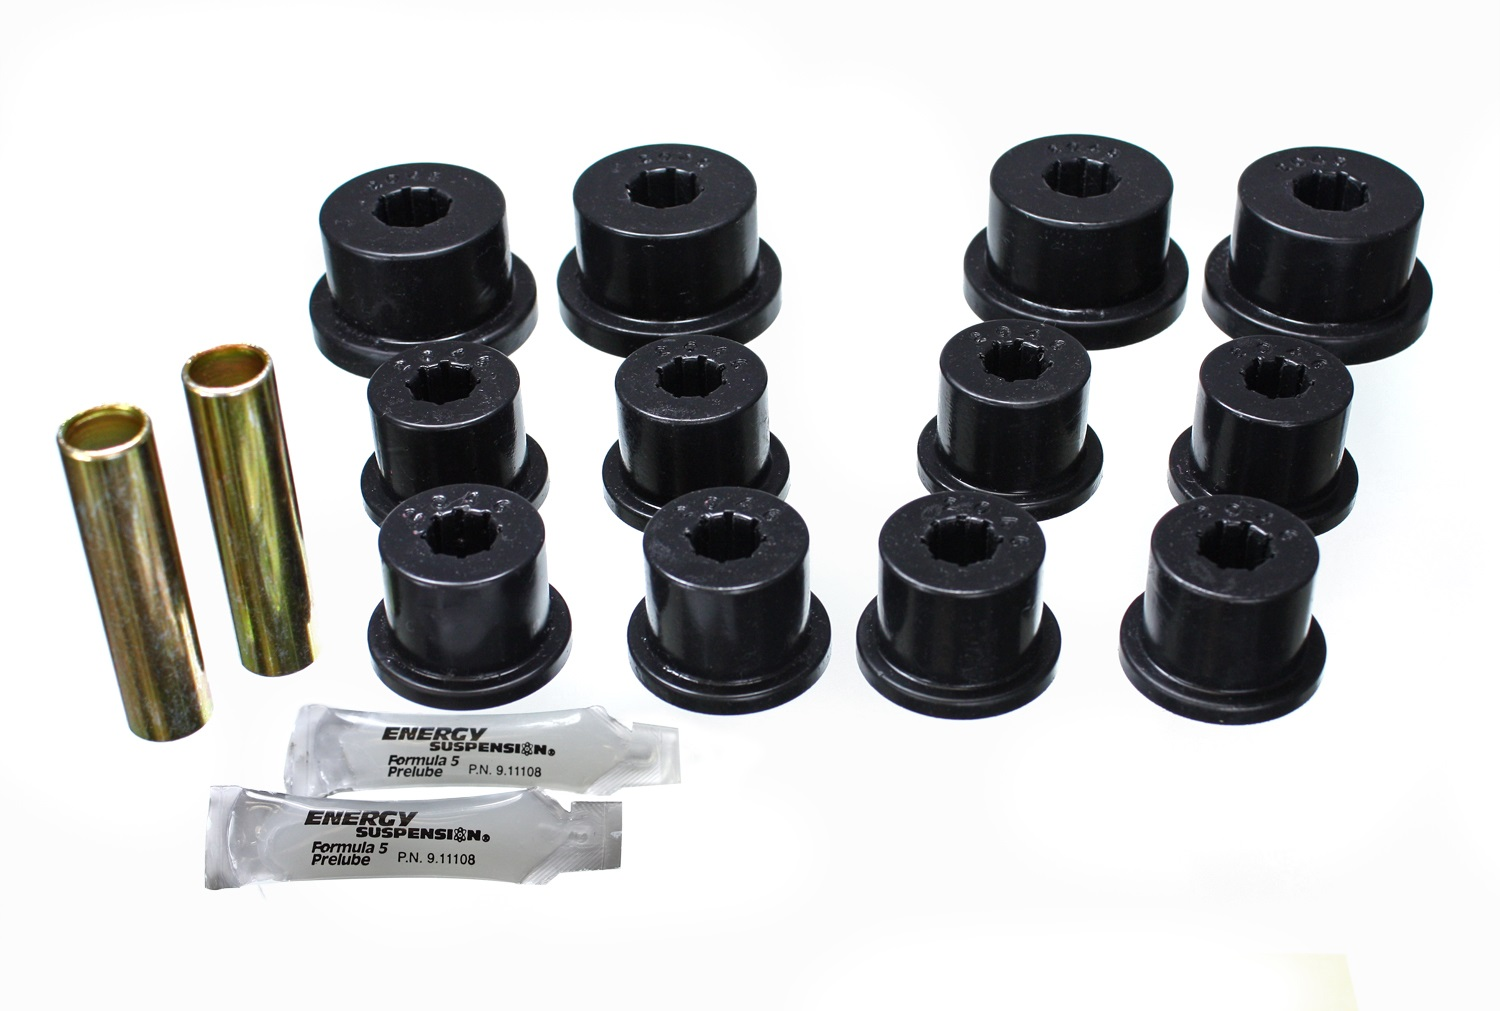 Energy Suspension Leaf Spring Bushing (1.2101G)